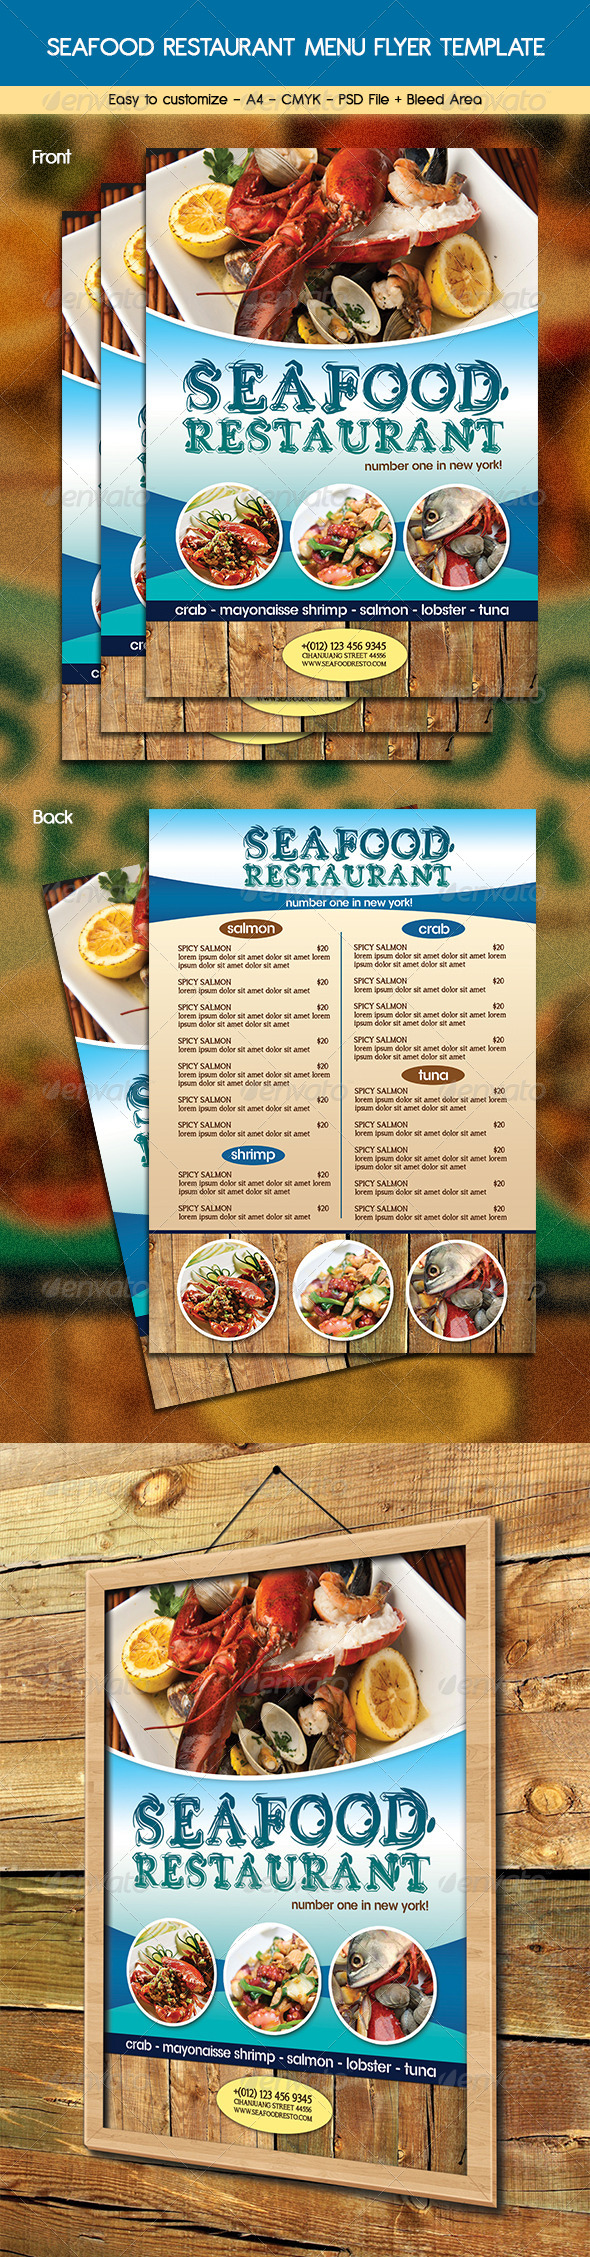 GraphicRiver Seafood Restaurant Menu Flyer 6415993